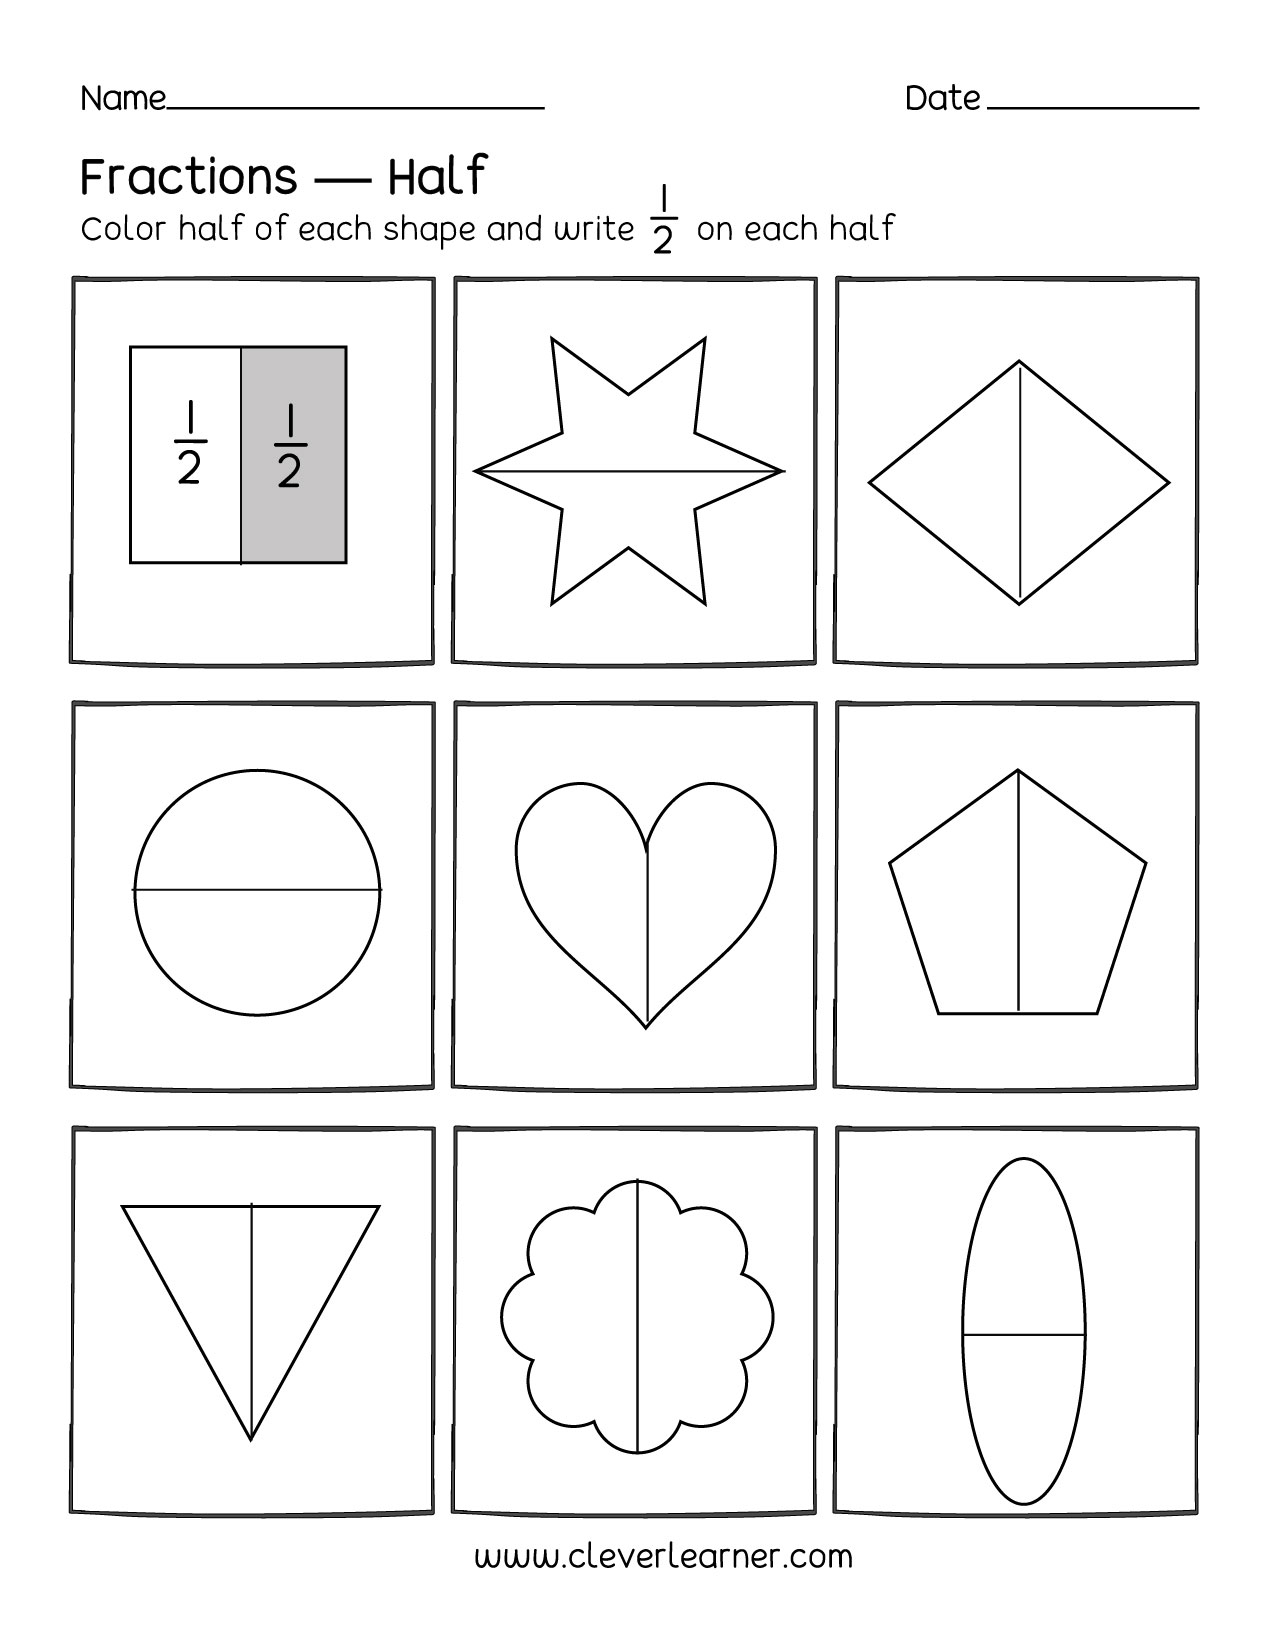 Worksheet Matching Shape Halves